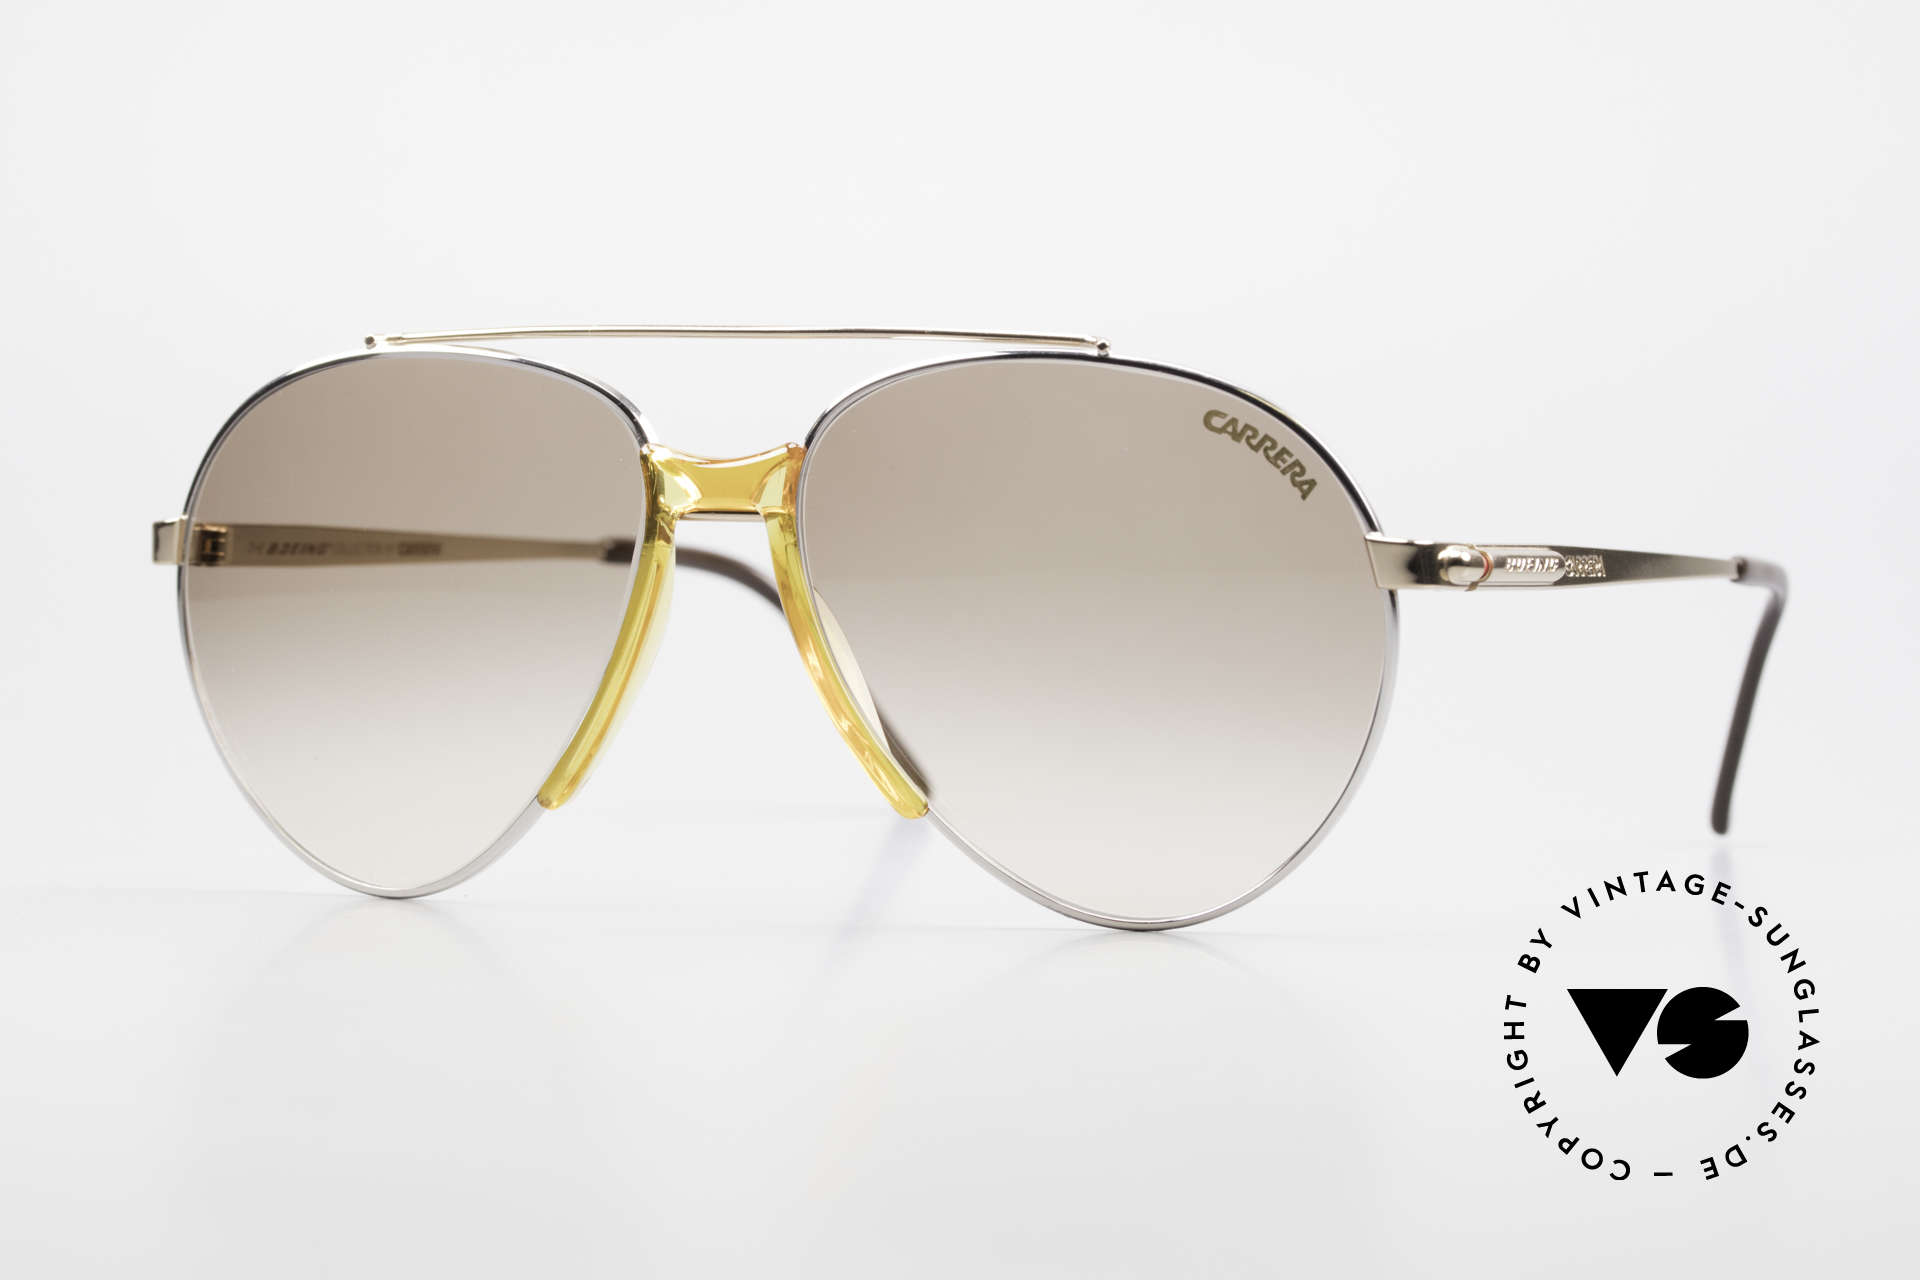 Boeing 5734 Rare 80's Flight Tech Eyewear, craftsmanship & design made to Boeing's specifications, Made for Men and Women